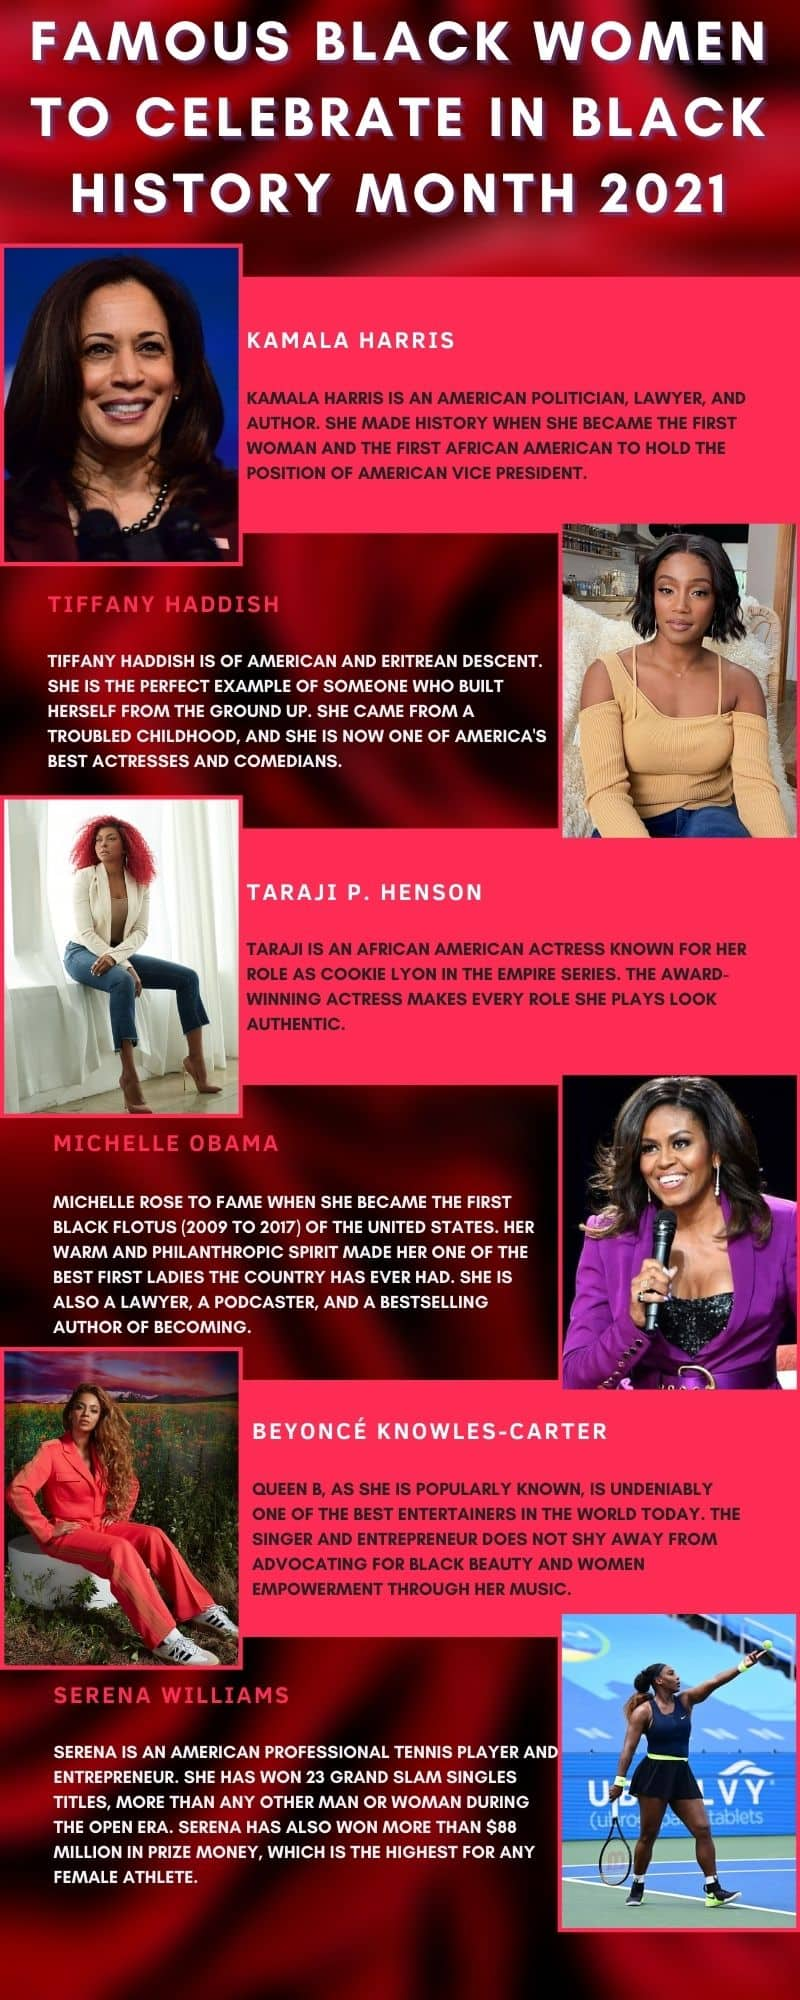 famous black women to celebrate in Black History Month